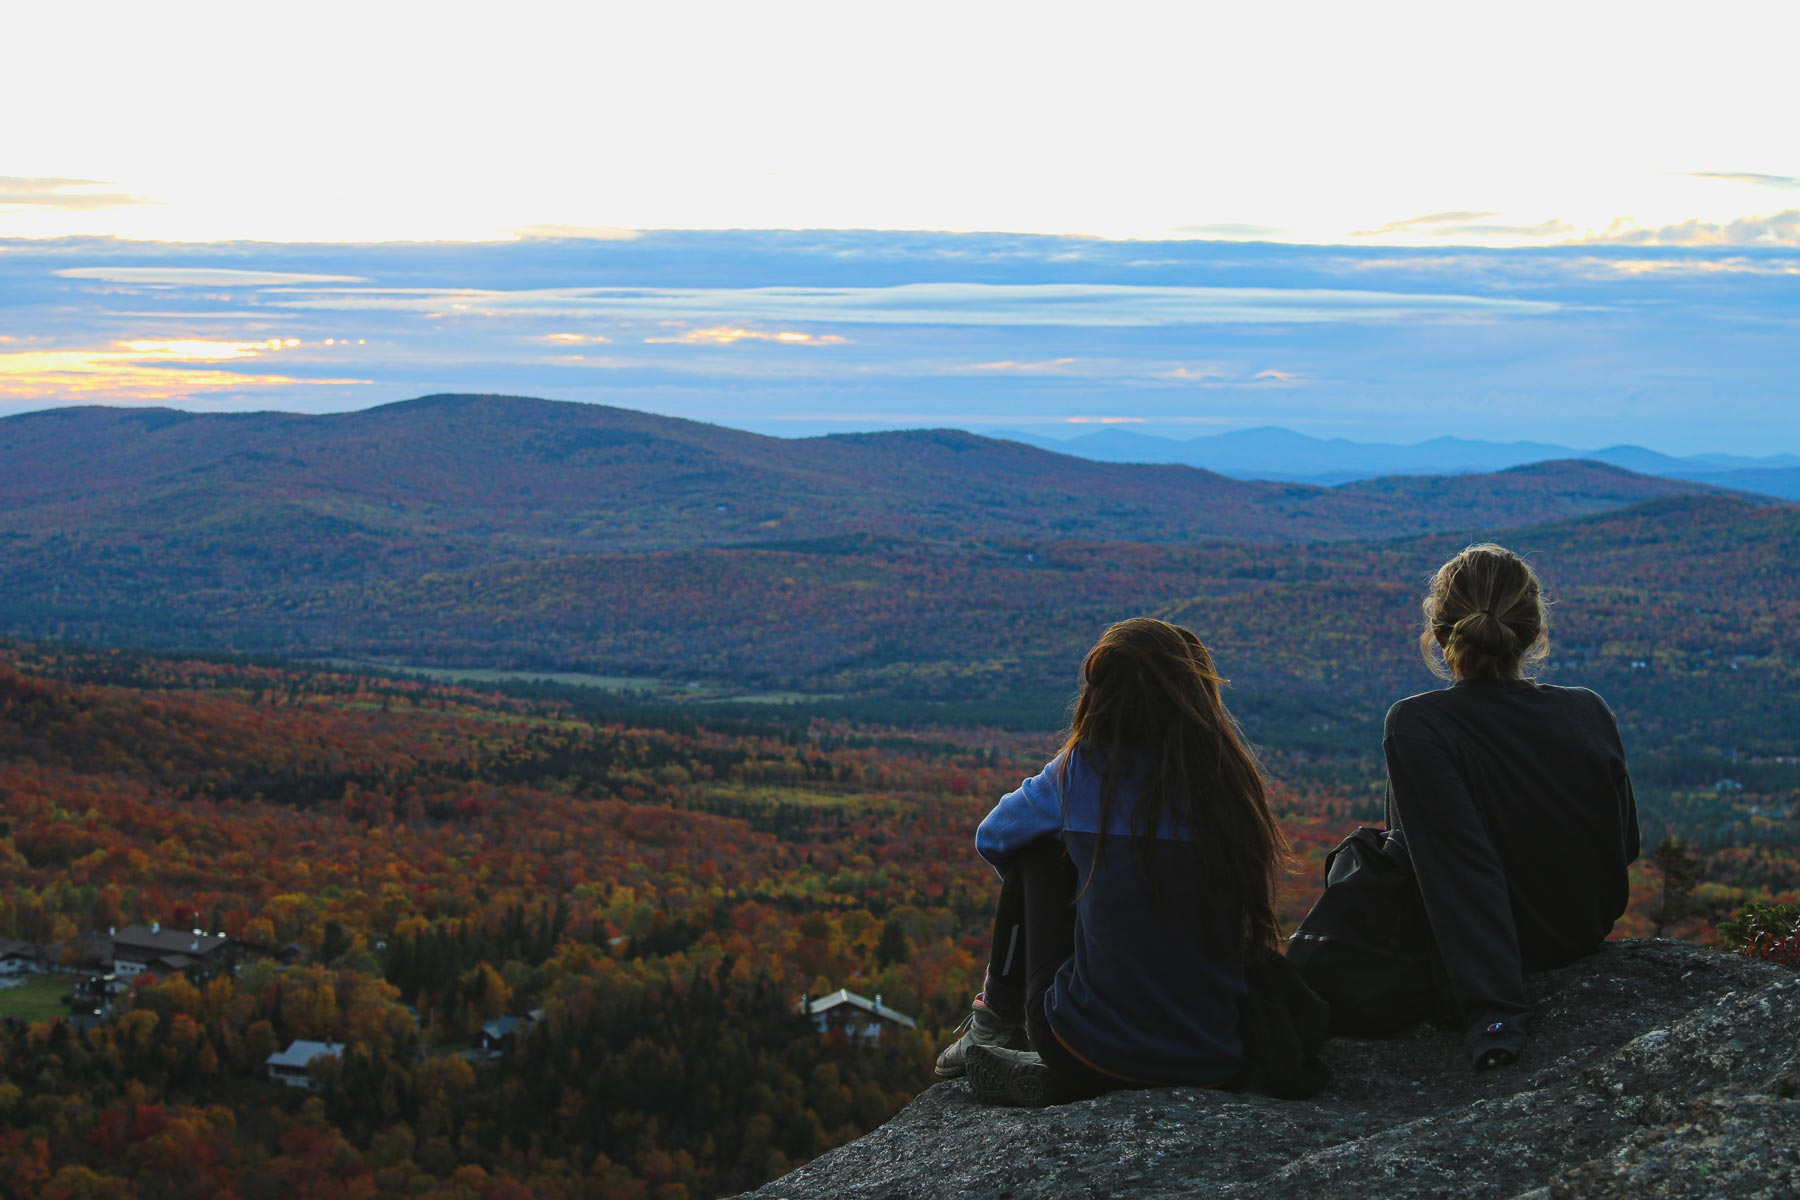 What to wear for fall hiking